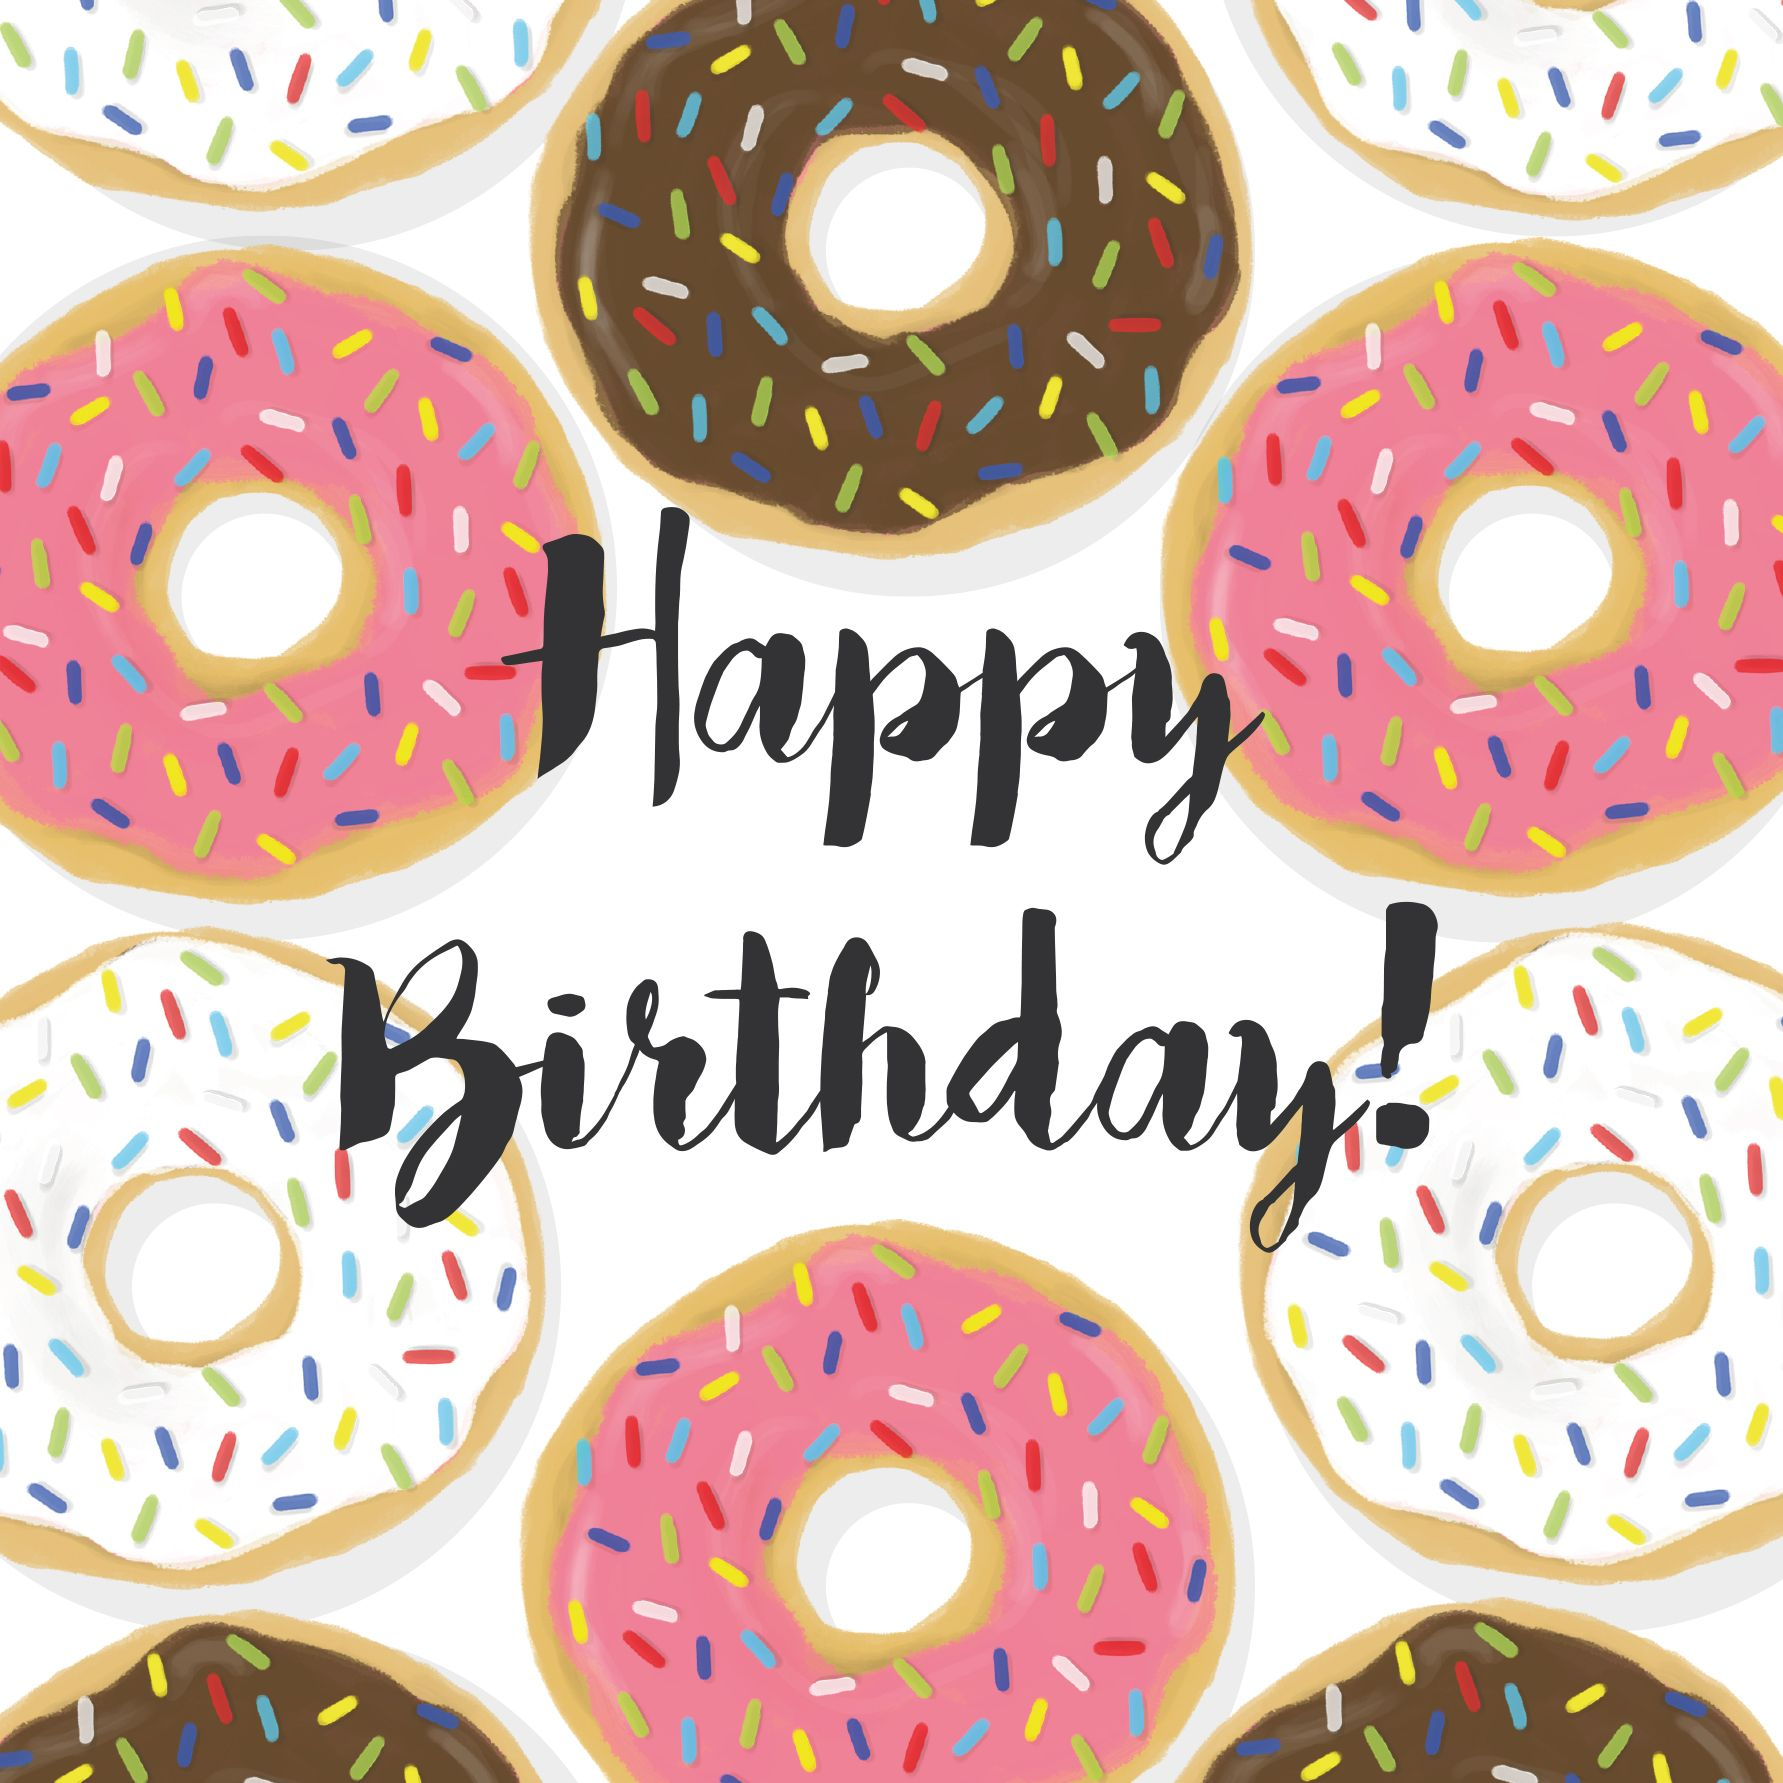 Donut clipart happy birthday. Mmm doughnuts card illustration